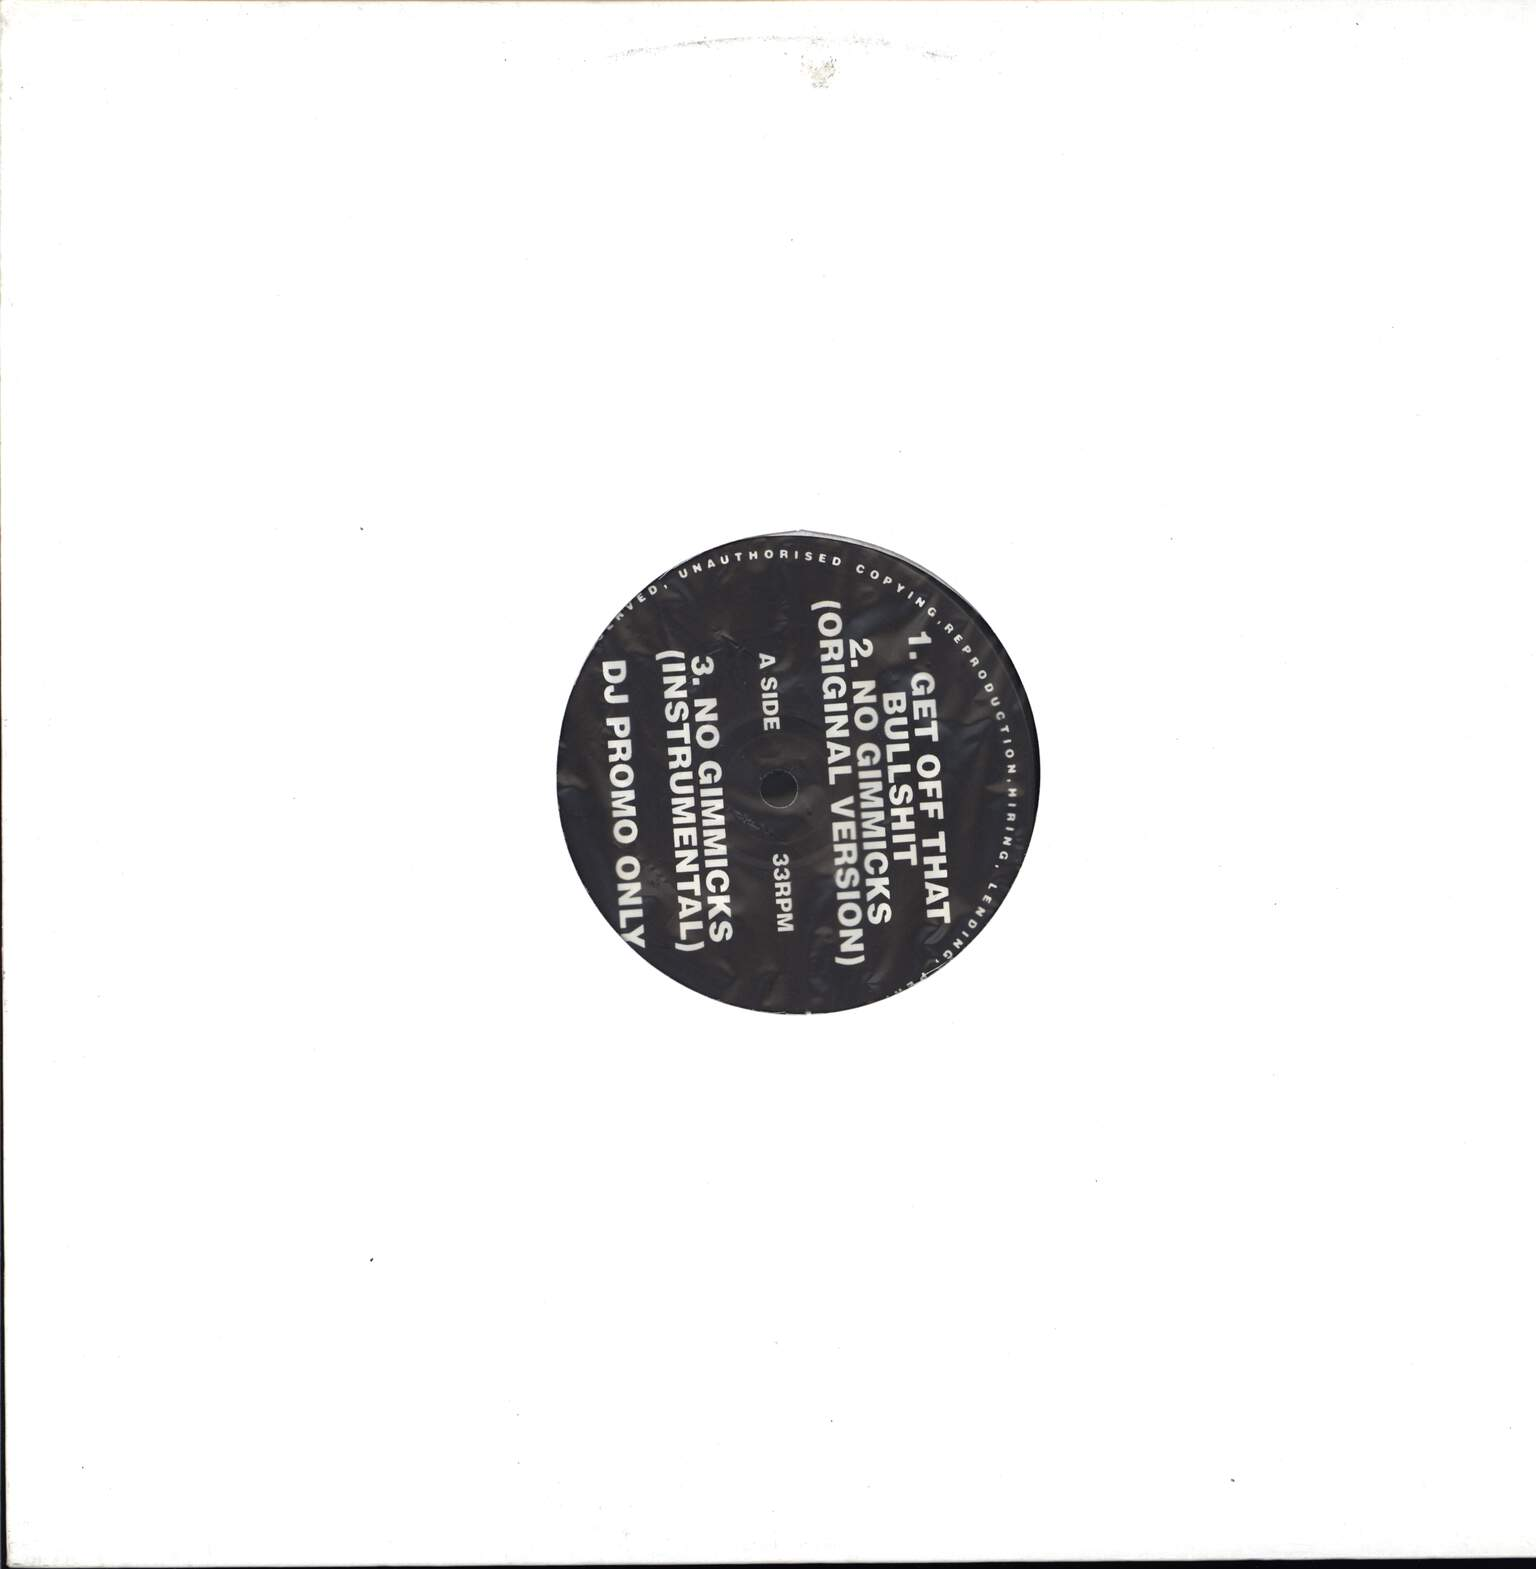 "Large Professor: Get Off That Bullshit / No Gimmicks / You Know Now (Remix), 12"" Maxi Single (Vinyl)"